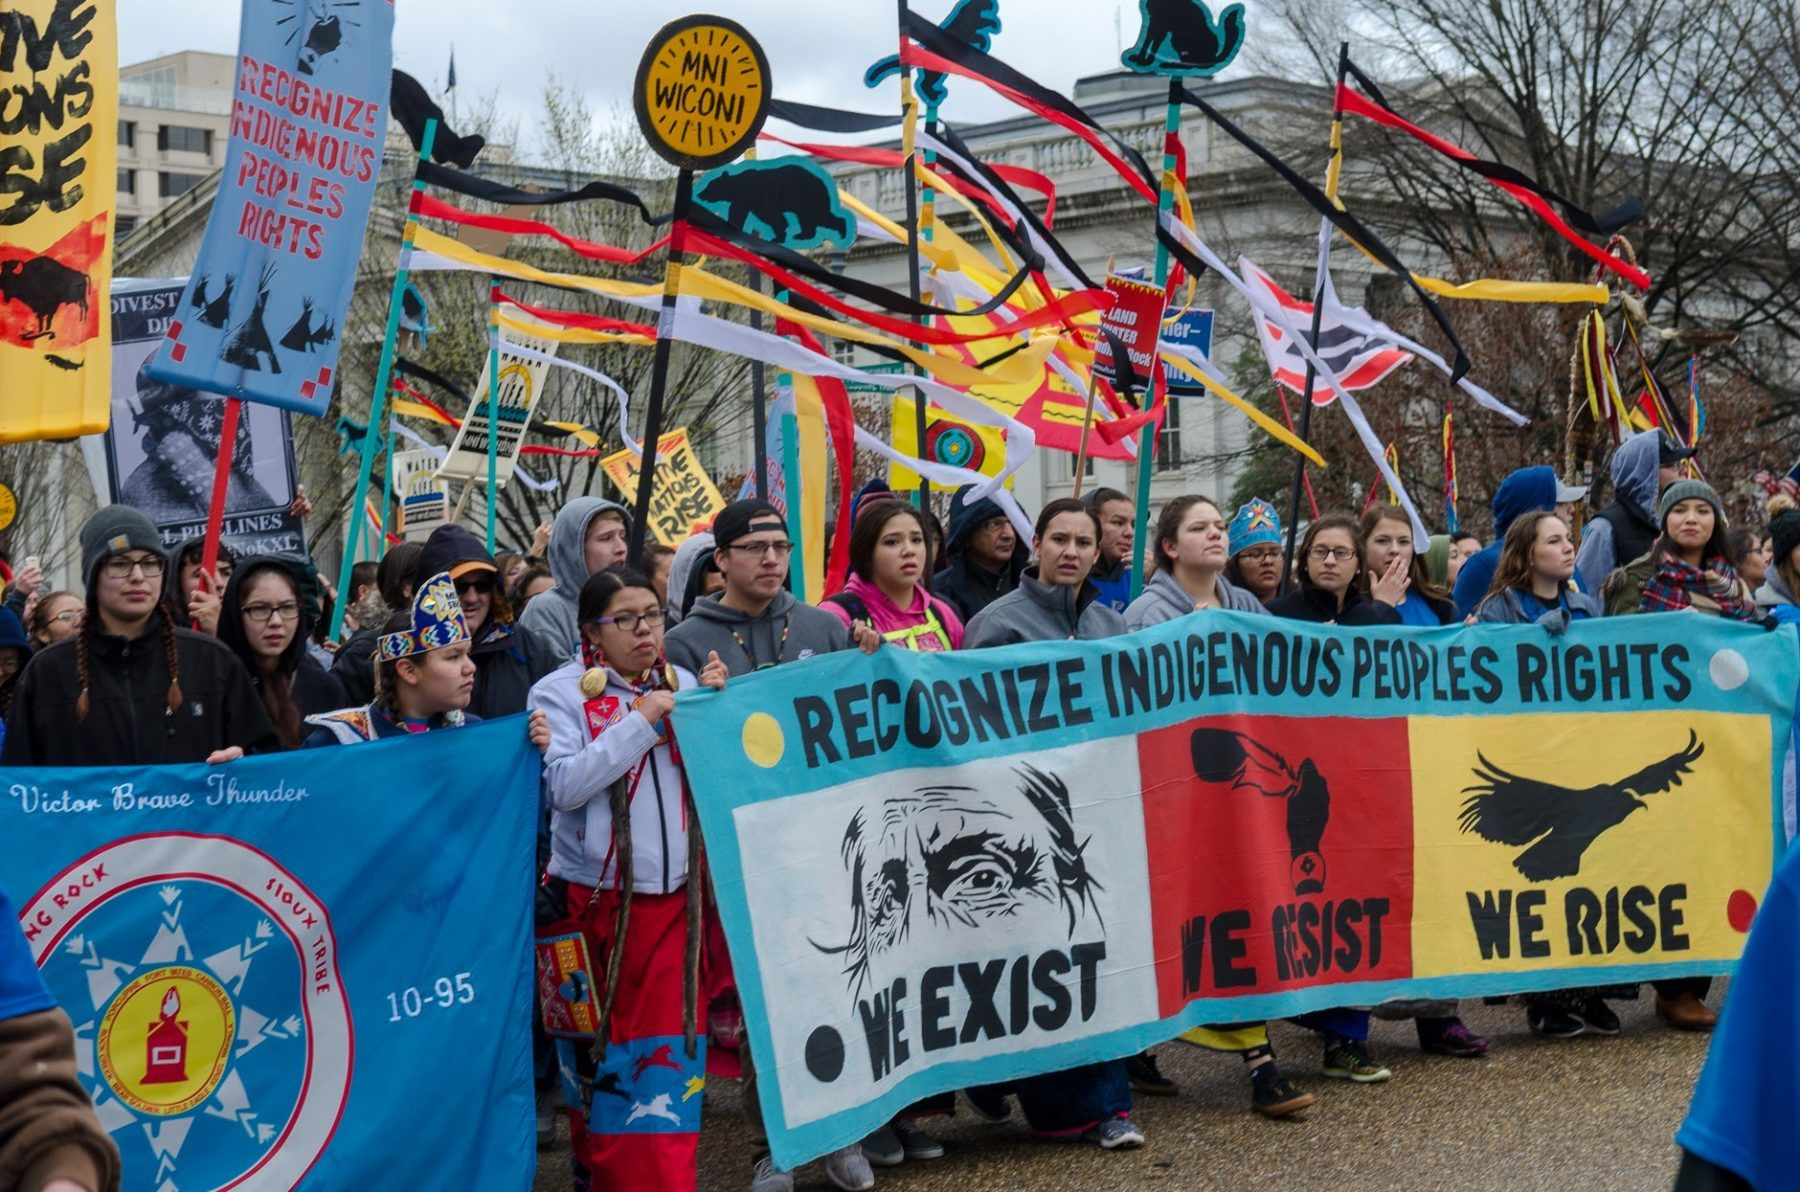 Native Nations Rise Indigenous Peoples And Allies March On Washington D C Indigenous Peoples Ally National